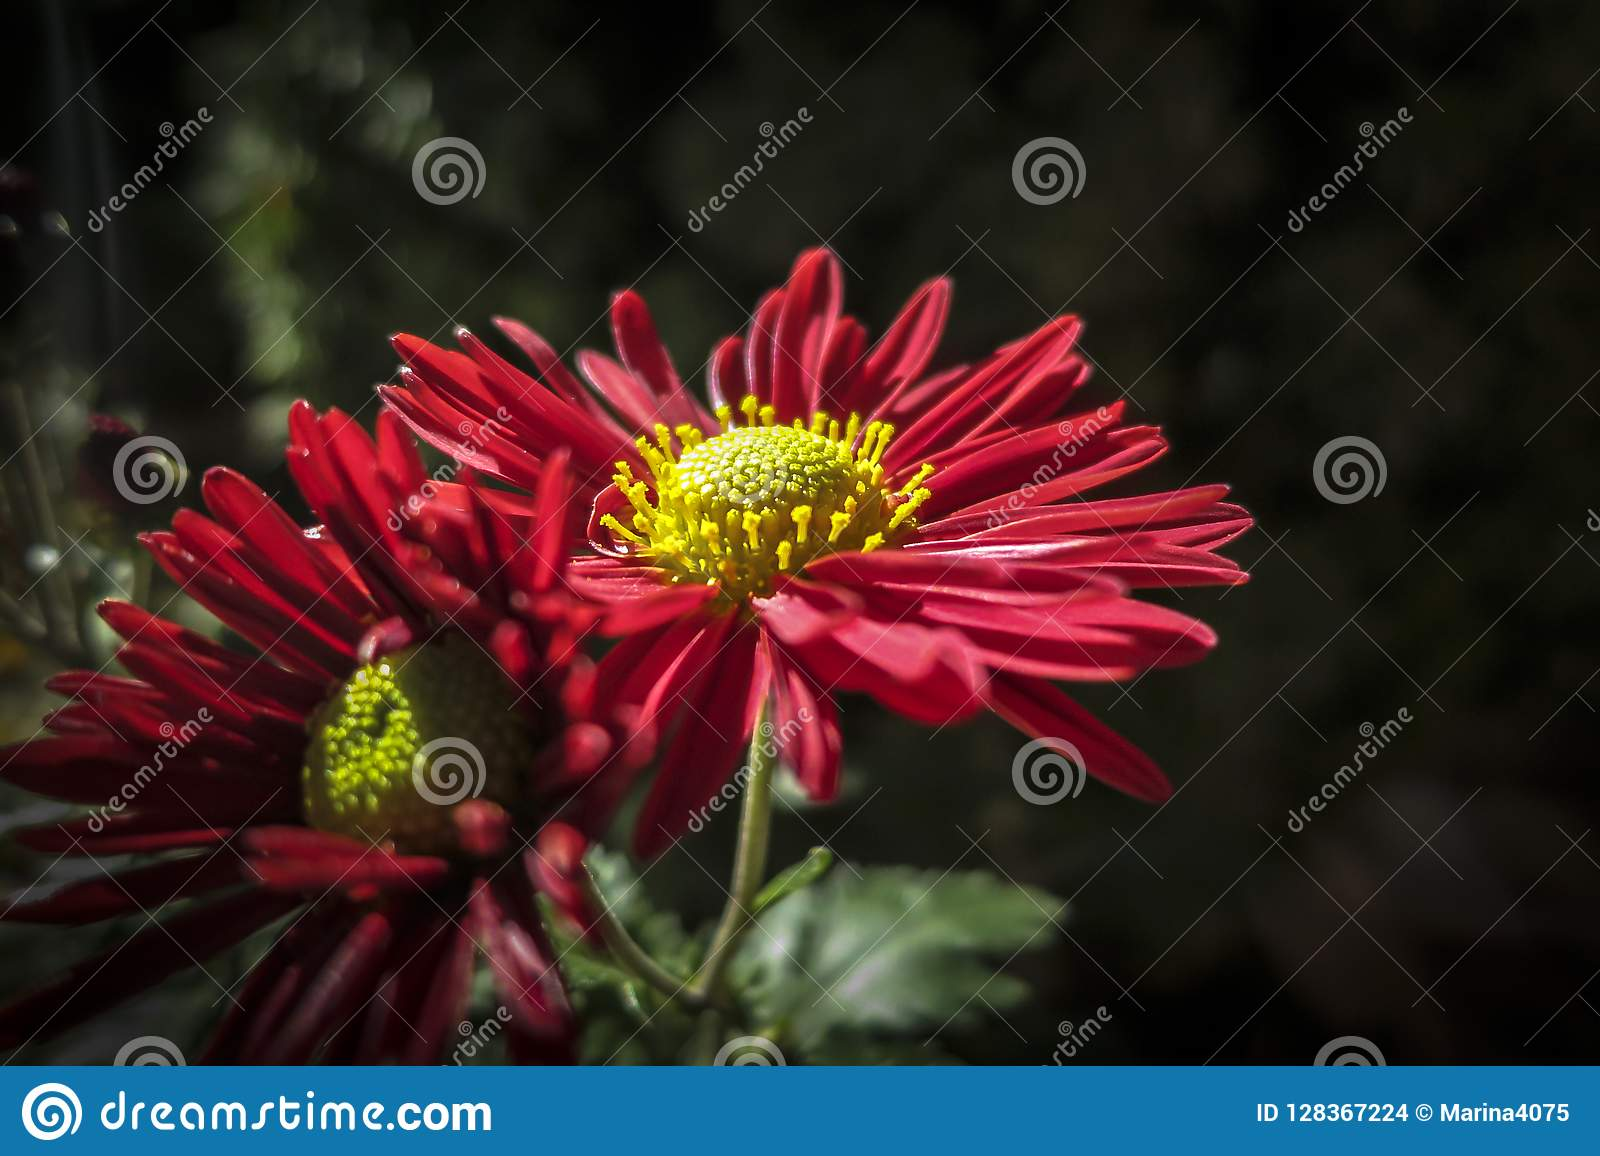 Bright Autumn Colors In Red Flowers Chrysanthemum Coreanum Two